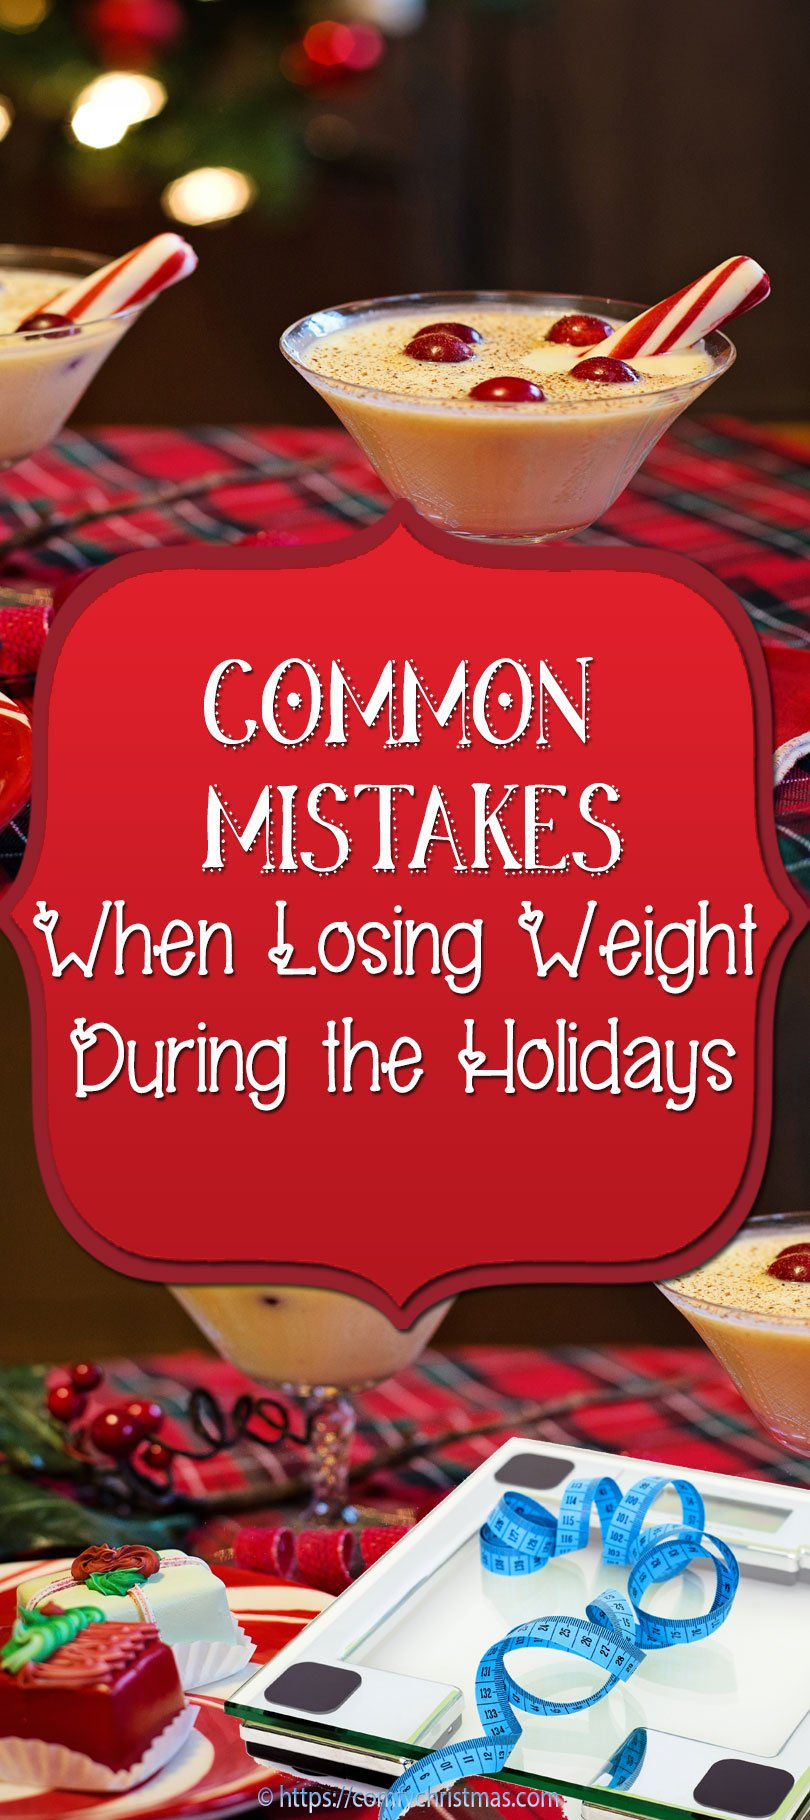 Losing Weight During Holidays